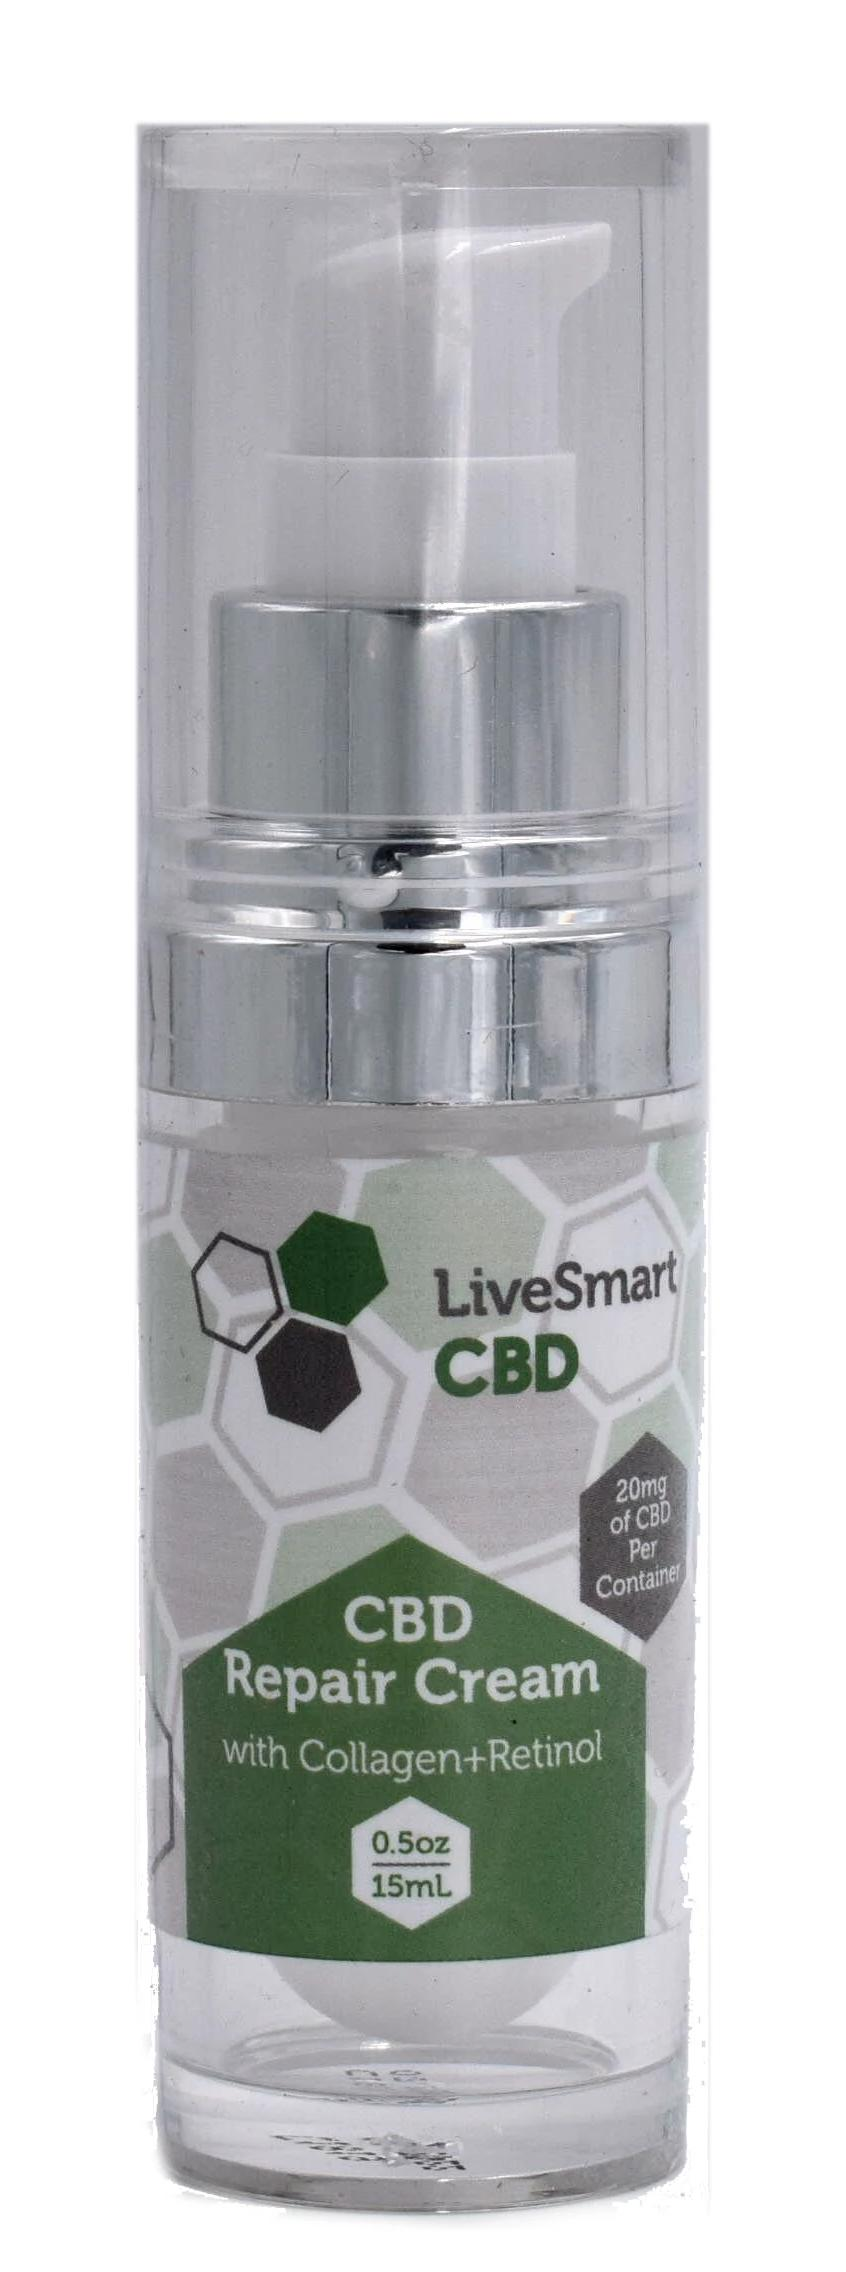 LiveSmart Hemp Oil Full-Spectrum Repair Cream with Collagen & Retinol (20mg)